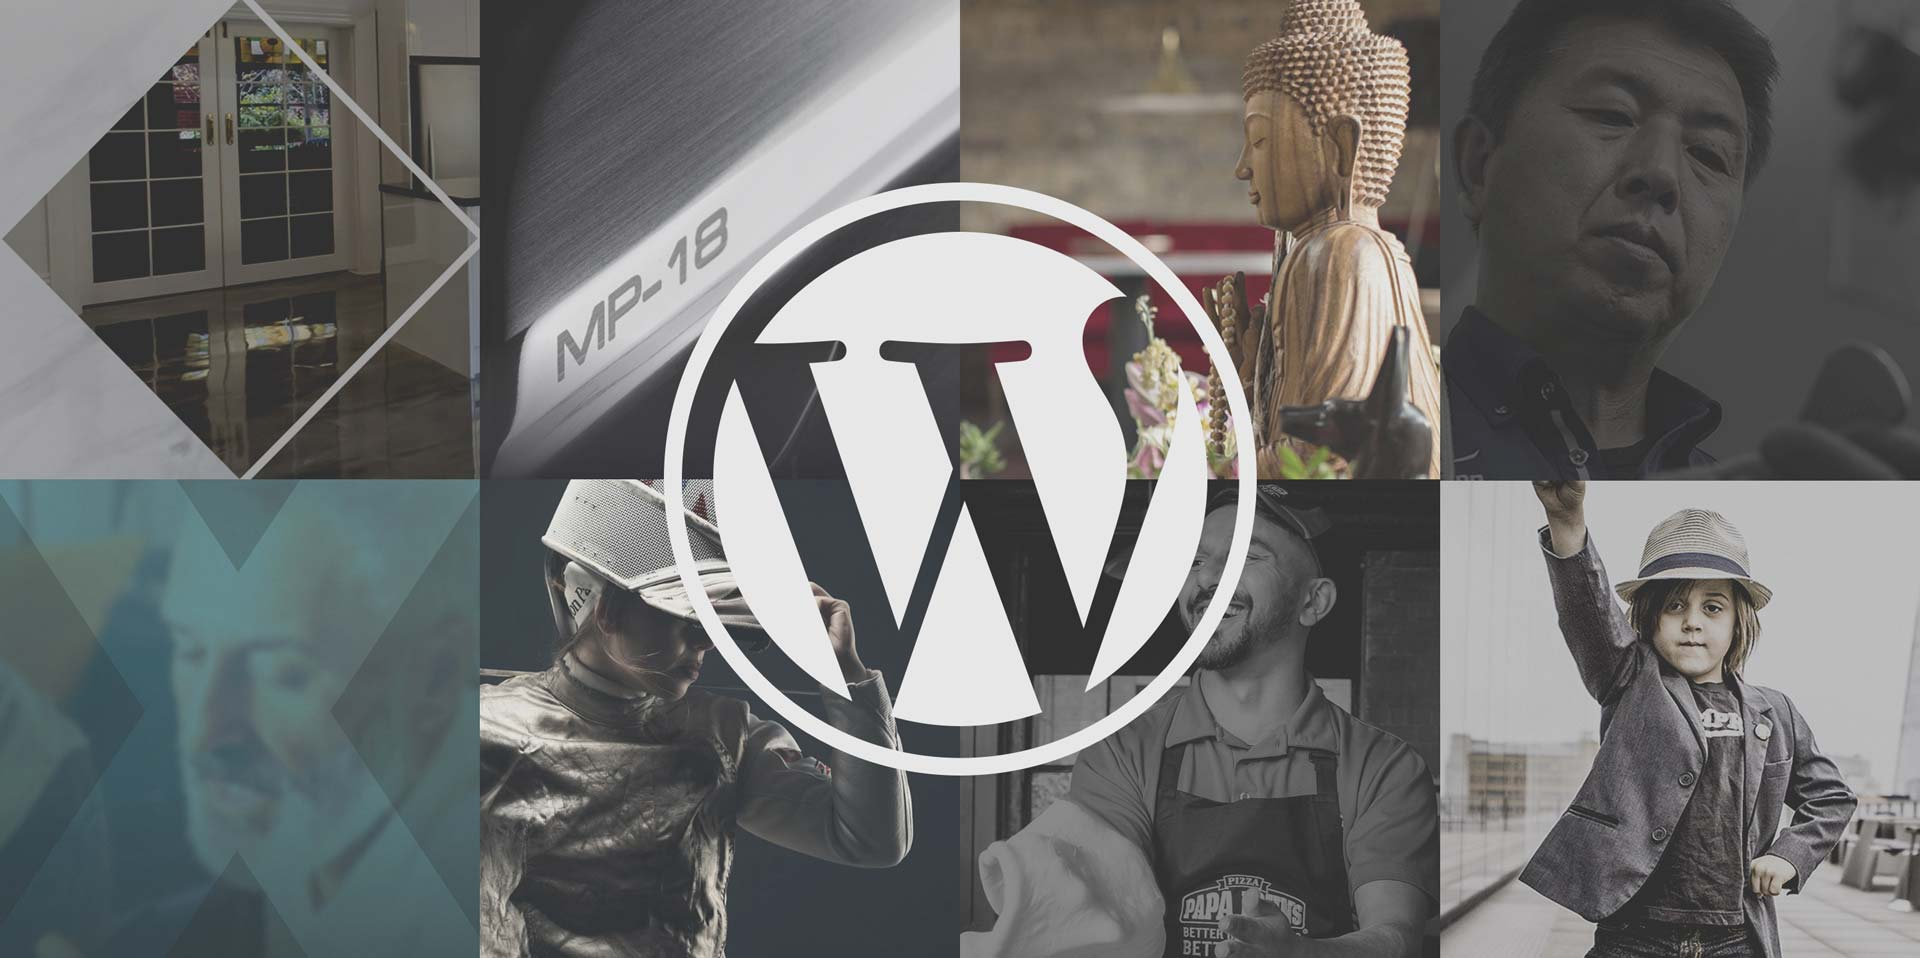 Examples of websites designed and built using Wordpress